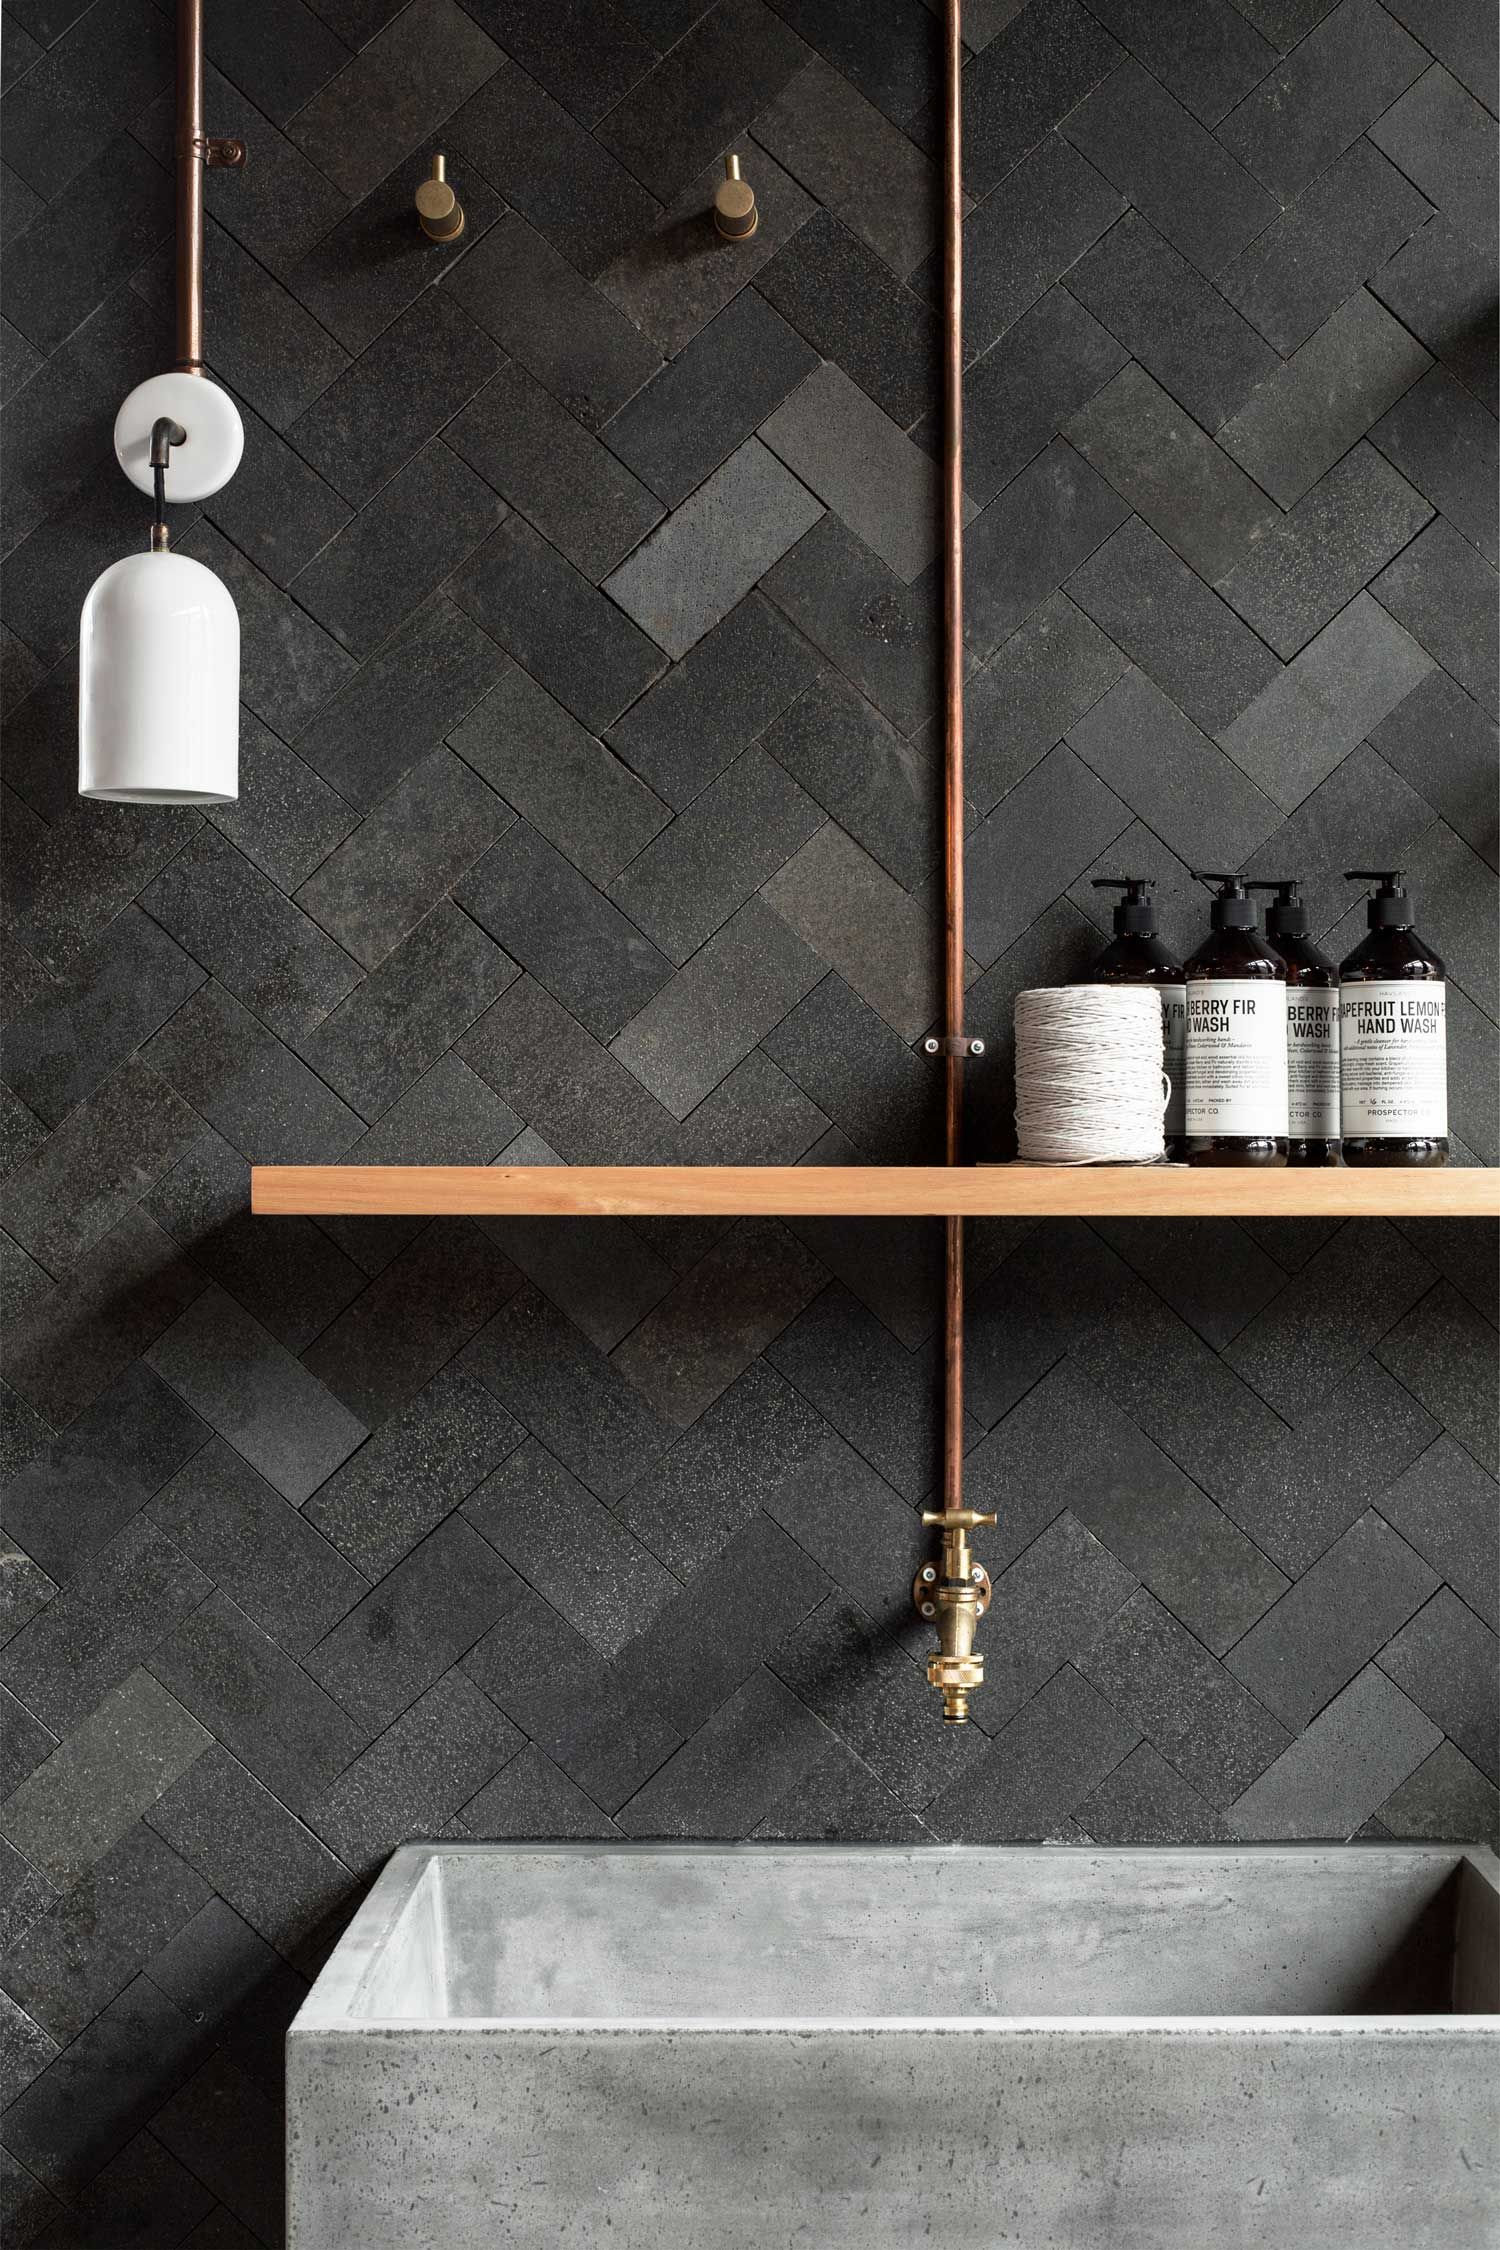 A blend of matte gray tiles set in a herringbone has such a soothing effect in this industrial bathroom.